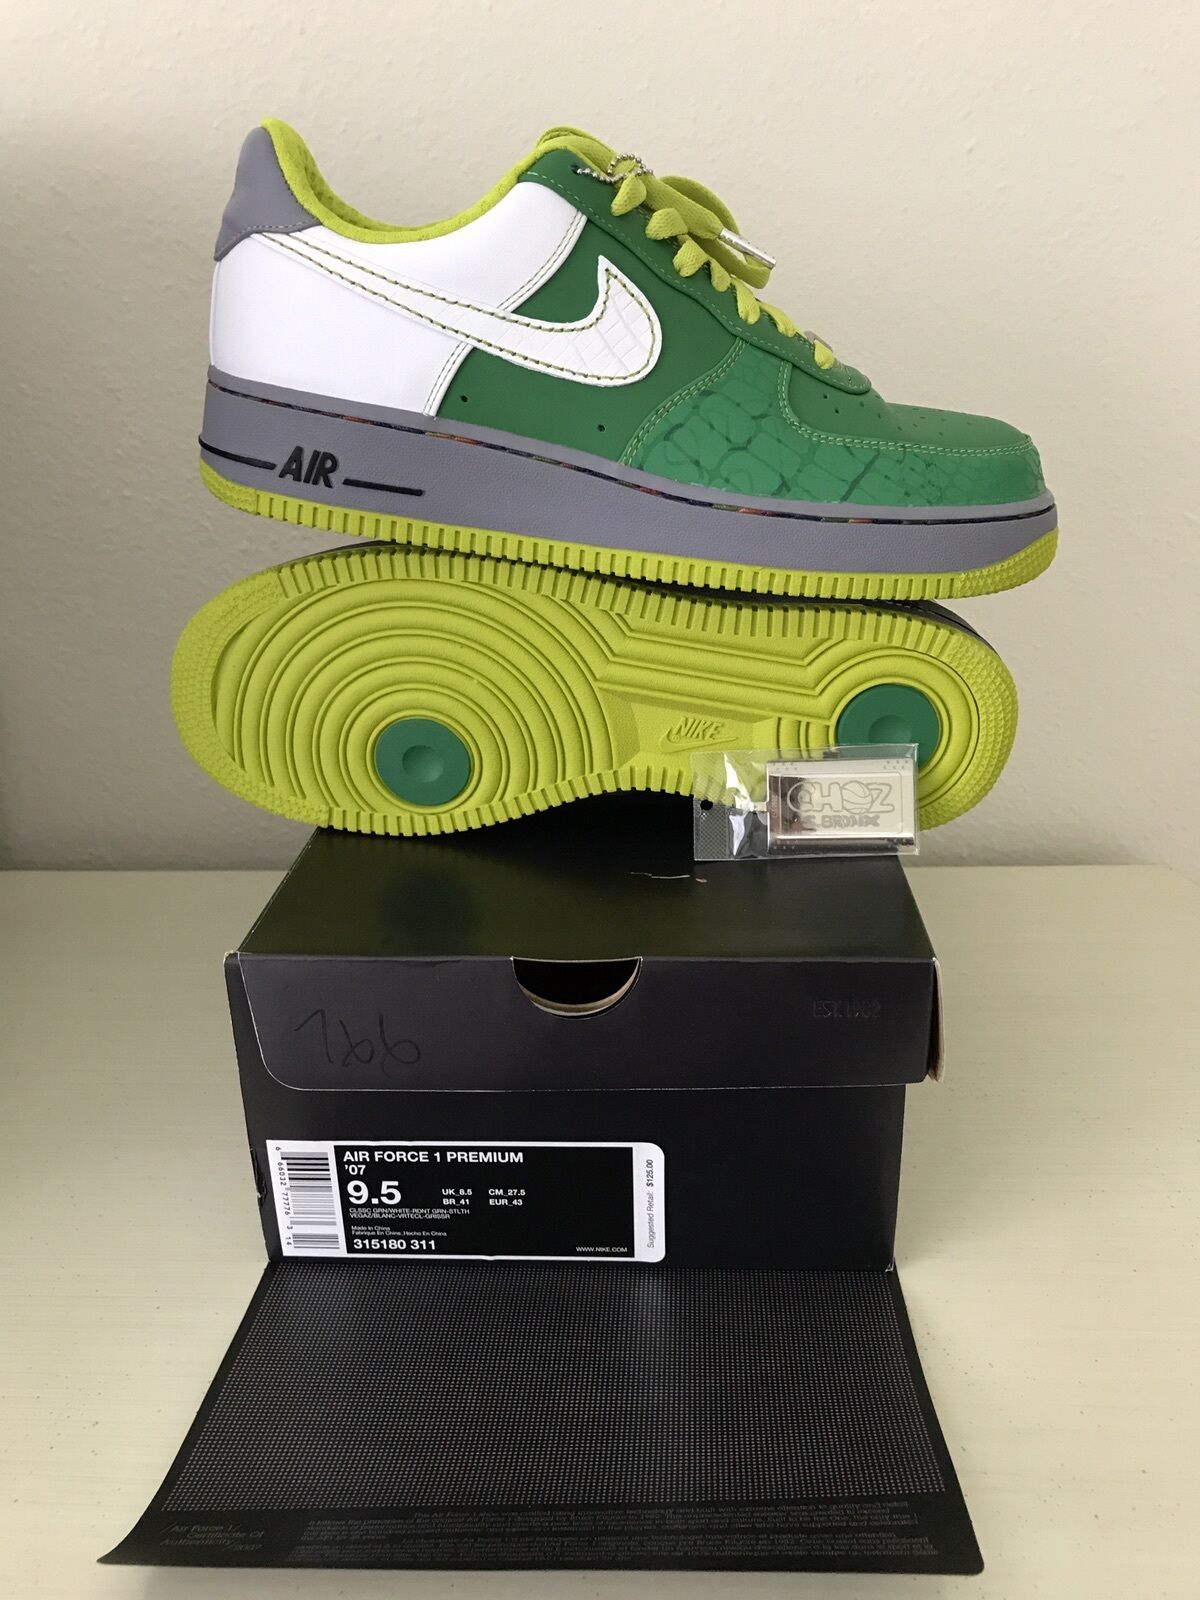 Nike Air Force 1 premium '07 9.5 Men 315180311 Classic Green Deadstock Great discount